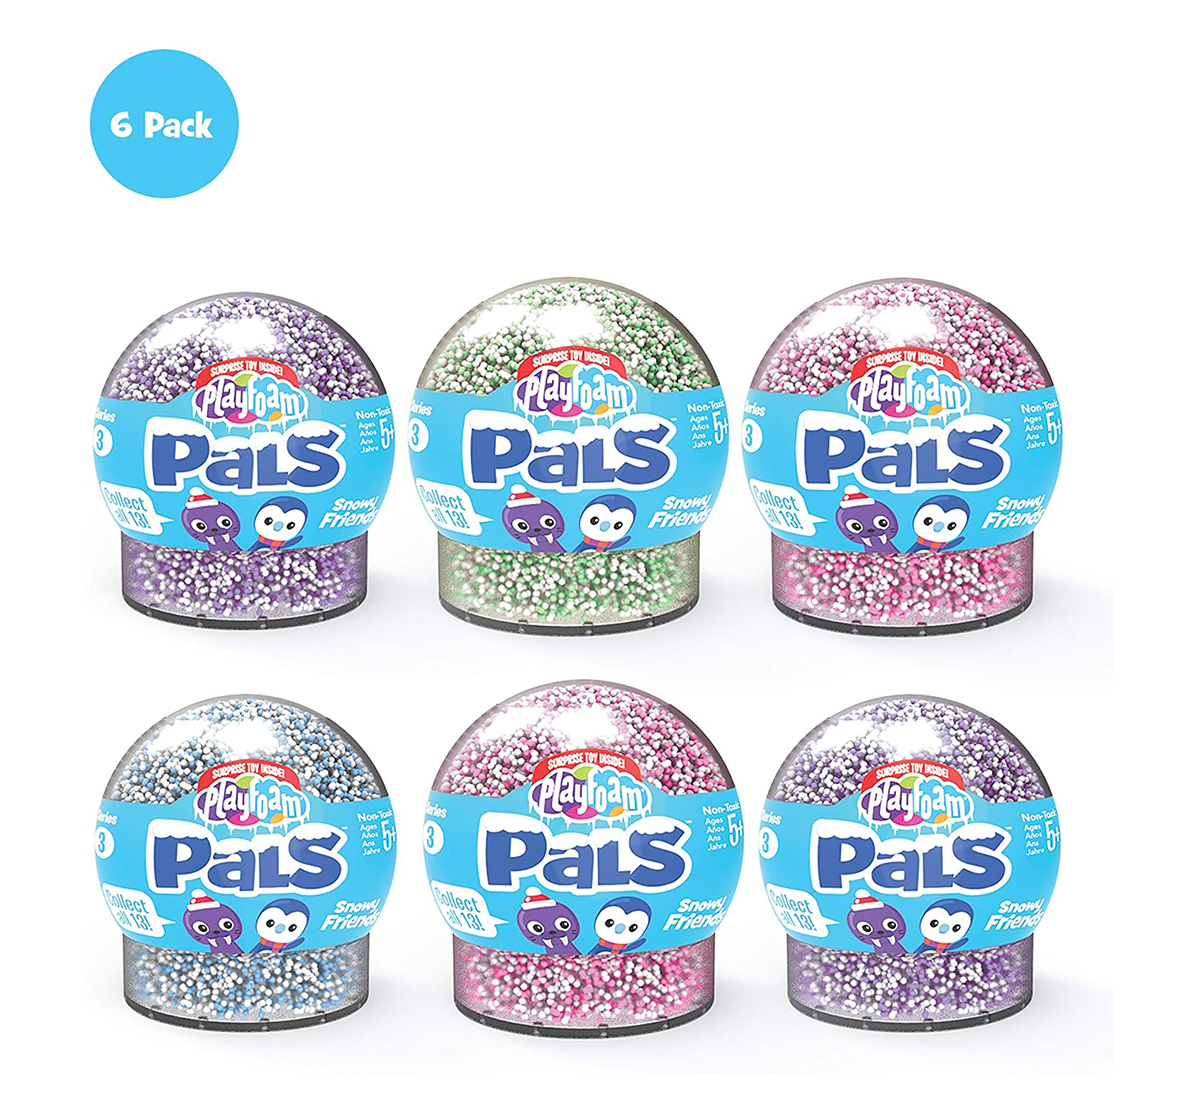 Learning Resources | Learning Resources Playfoam® Pals™ Snowy Friends Series 3 (6 Pack) Sand, Slime & Others for Kids age 10Y+